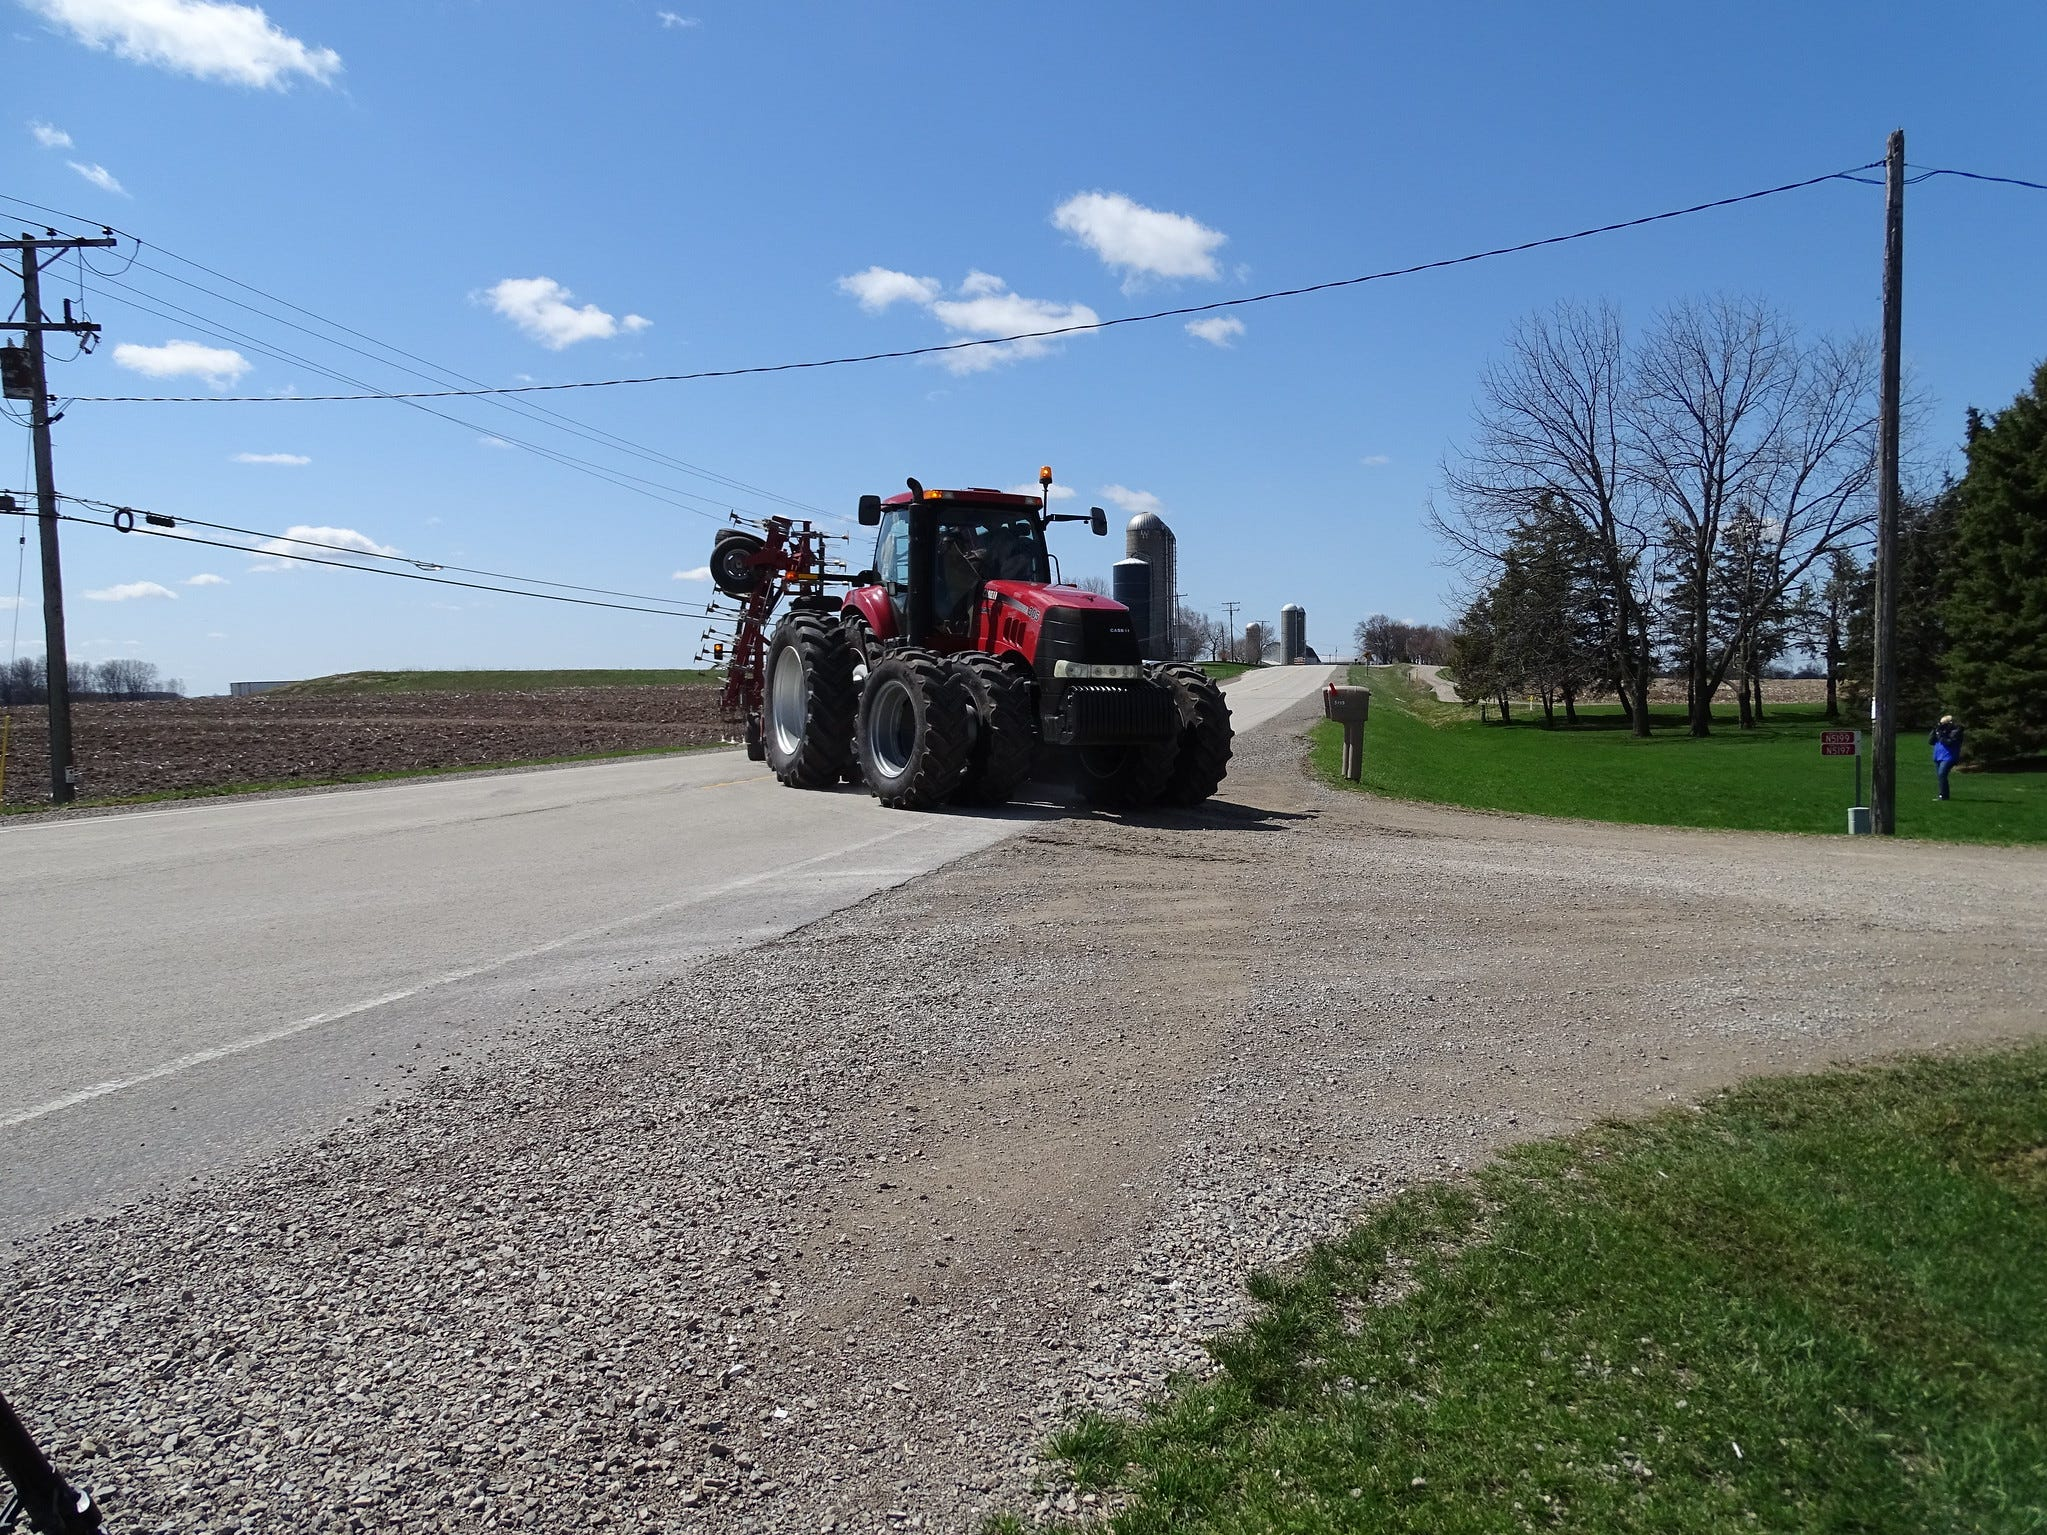 Motorists should pay attention to farm machinery turning into or pulling out of farm driveways.